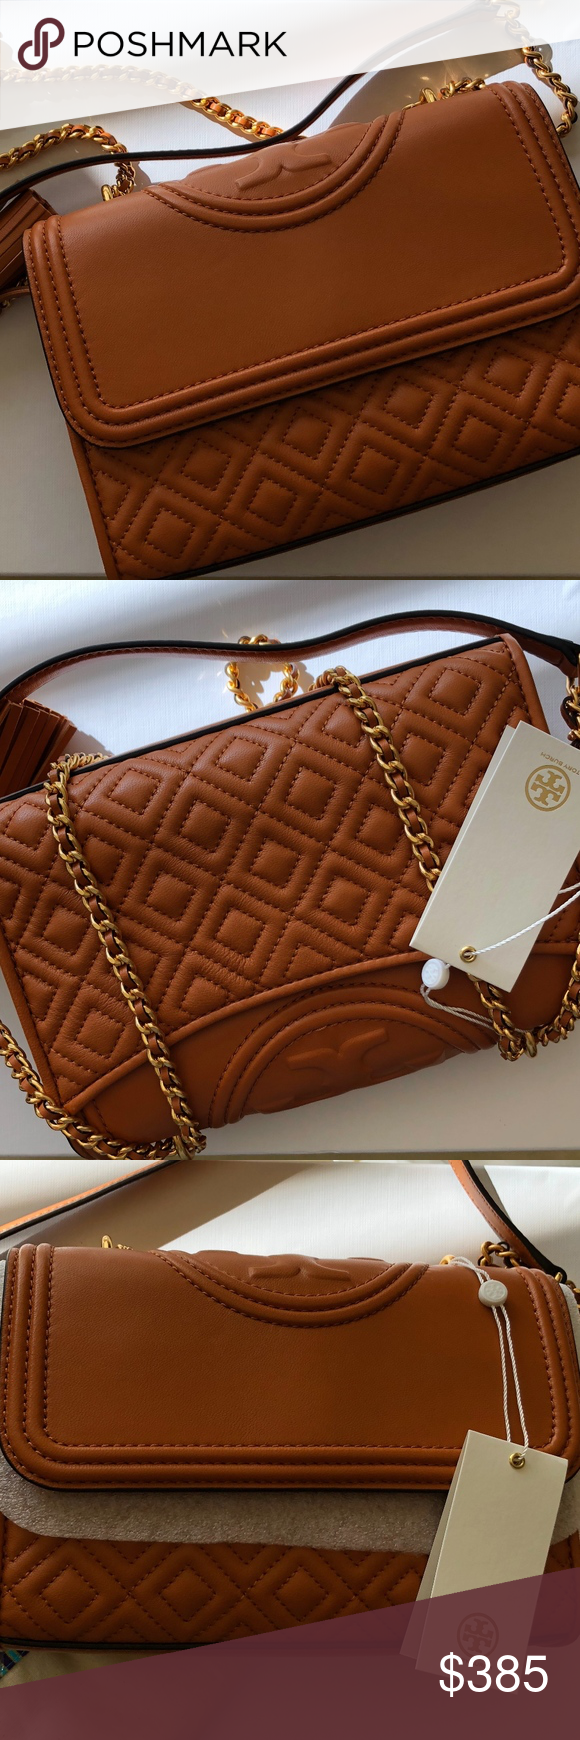 0227f7c10e Tory Burch Small Fleming Bag Light Masala NWT Tory Burch Fleming Bag- Light  Masala (beautiful camel color). Comes with Tag and Dustbag. Tory Burch Bags  ...